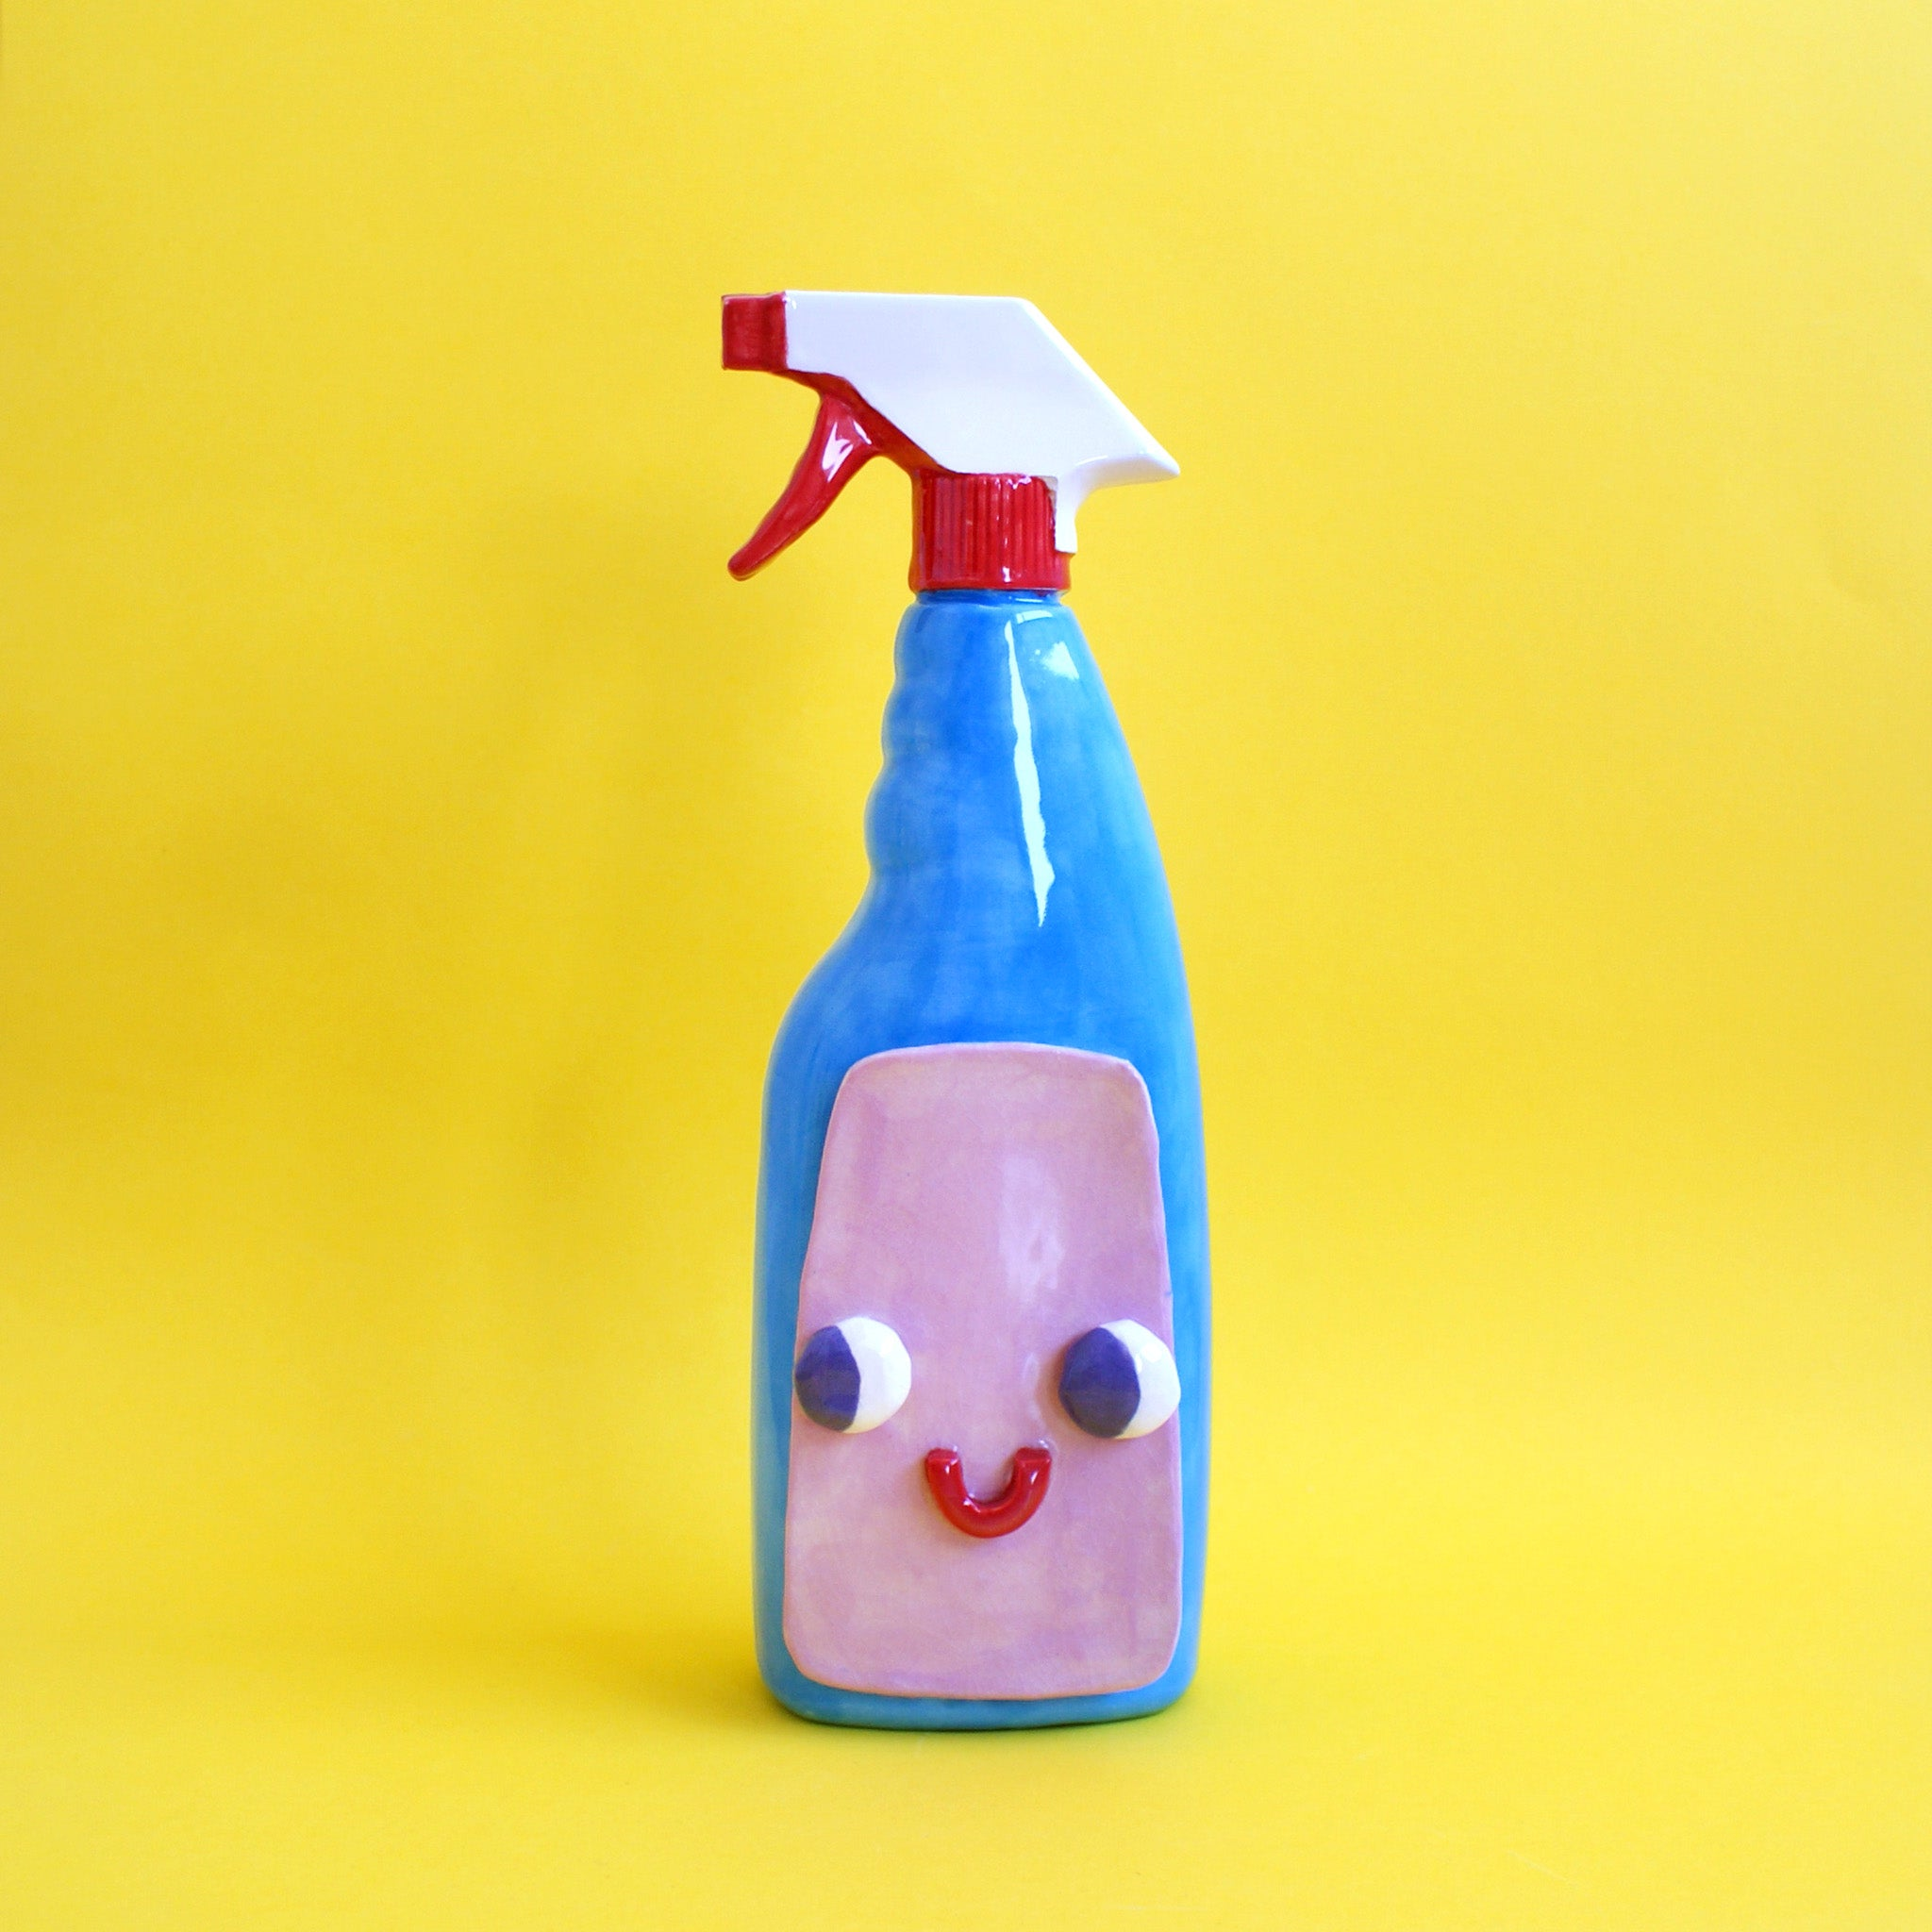 Happy Ceramic Glass Cleaner Spray Bottle with Eyes